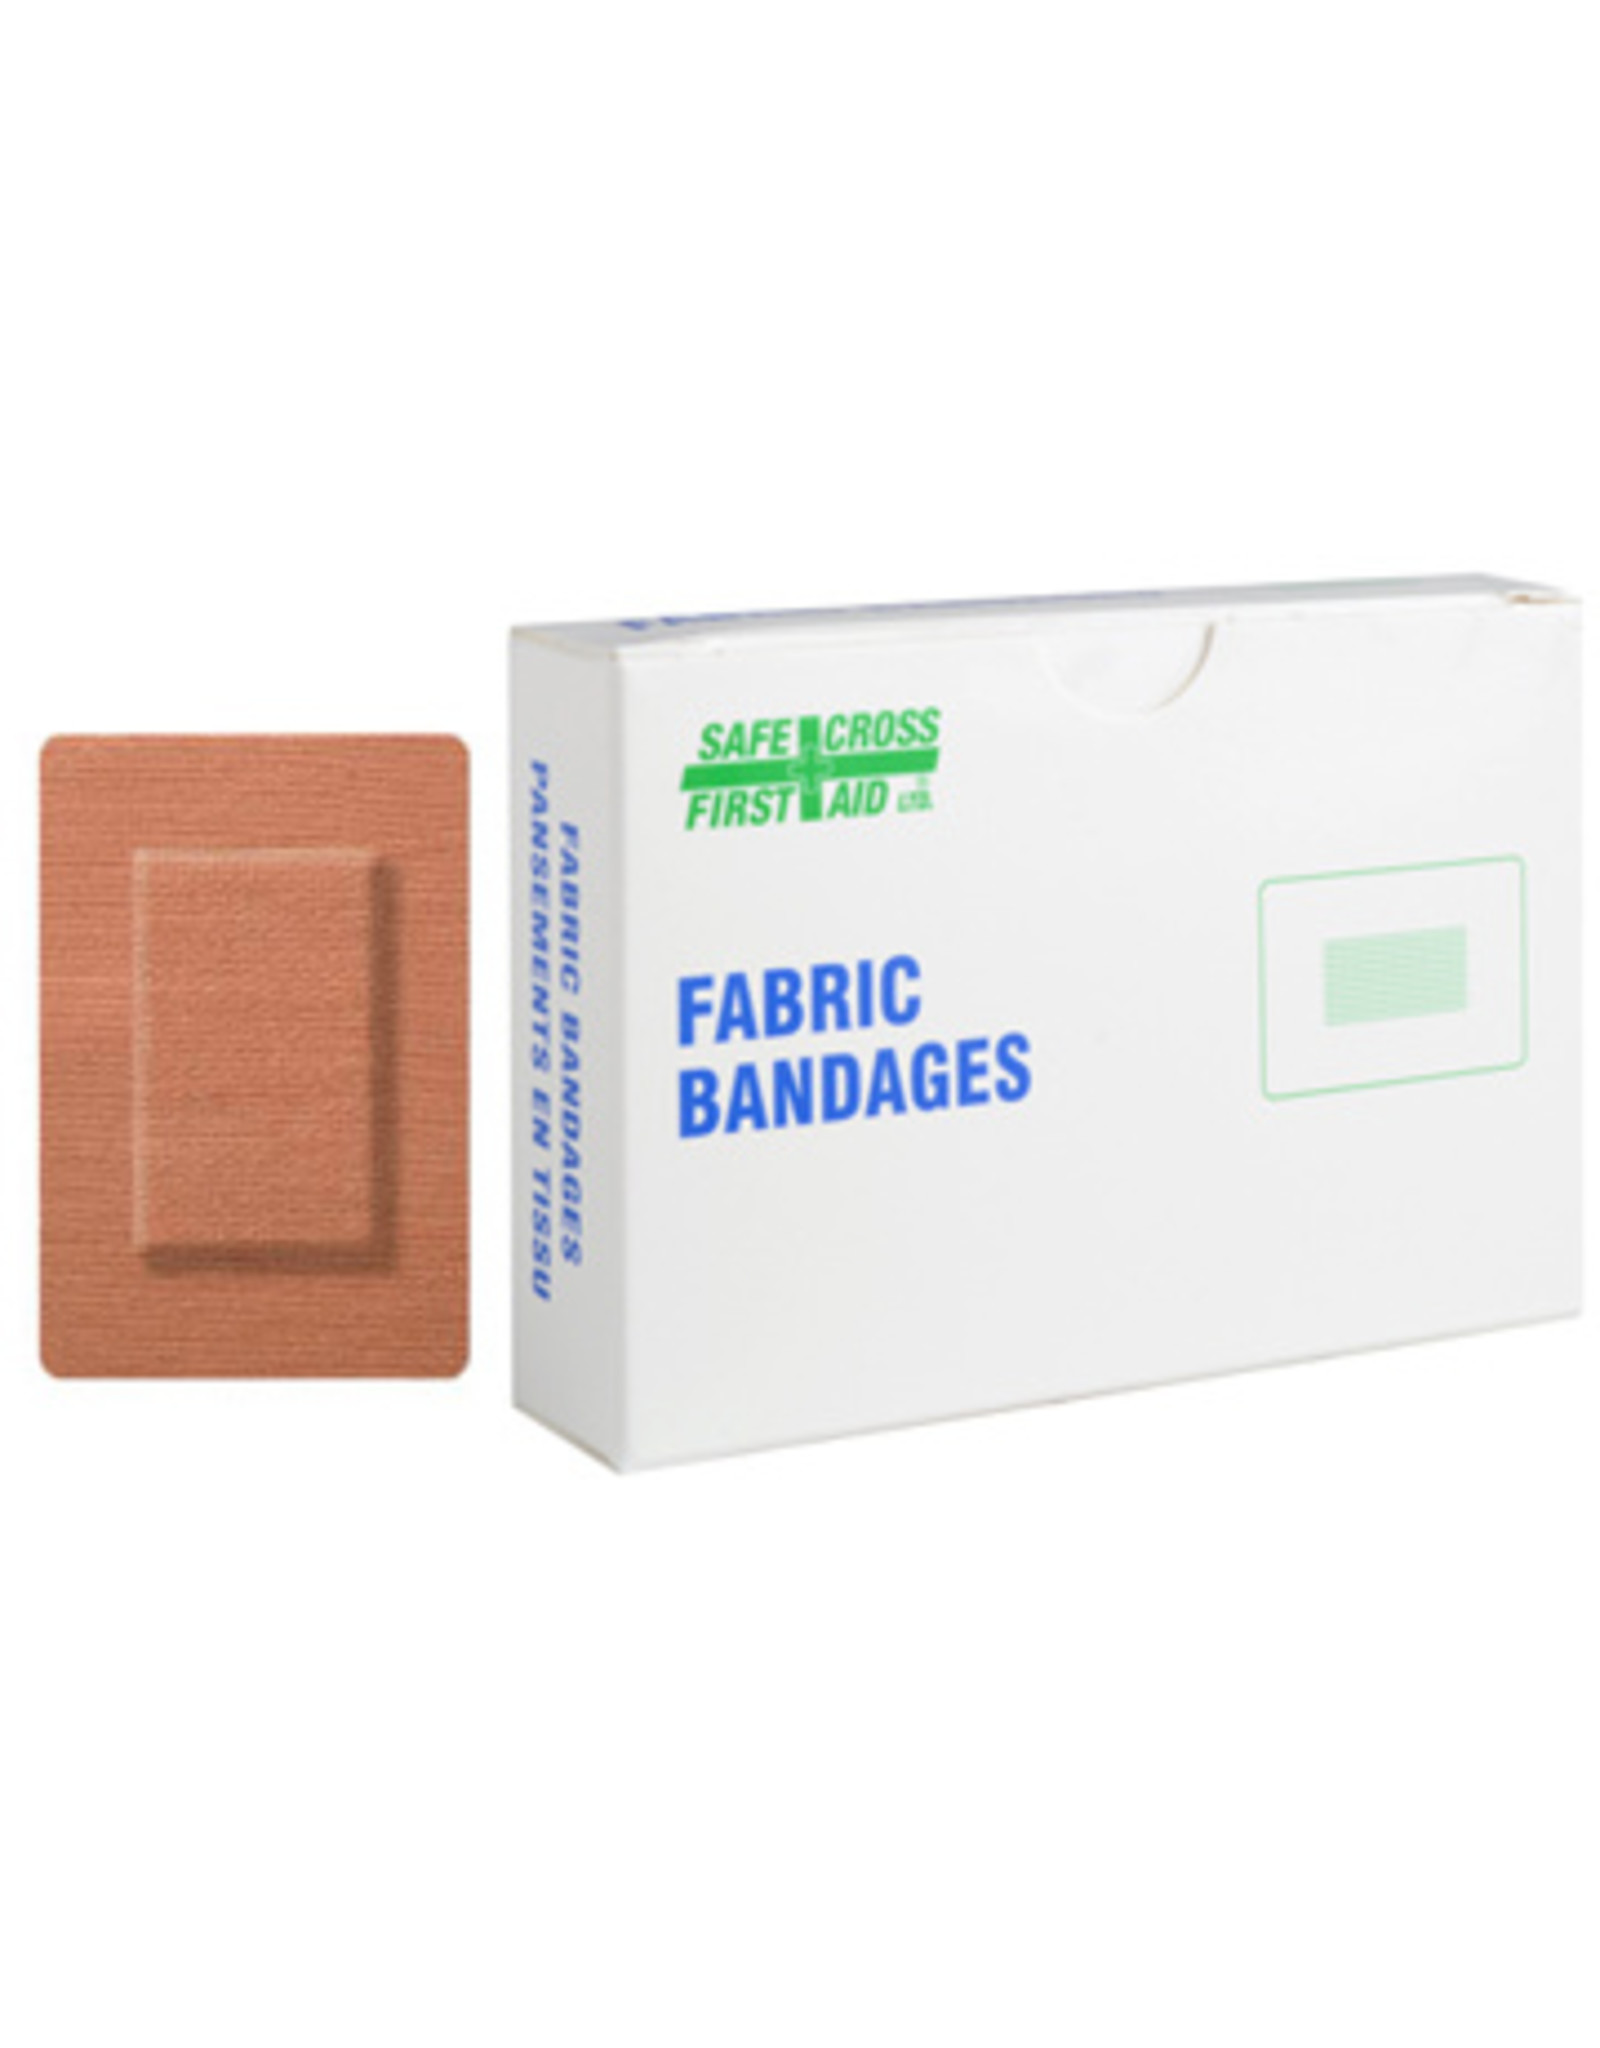 Fabric Bandages, Large Patch, 5.1cm x 7.6cm - Heavyweight